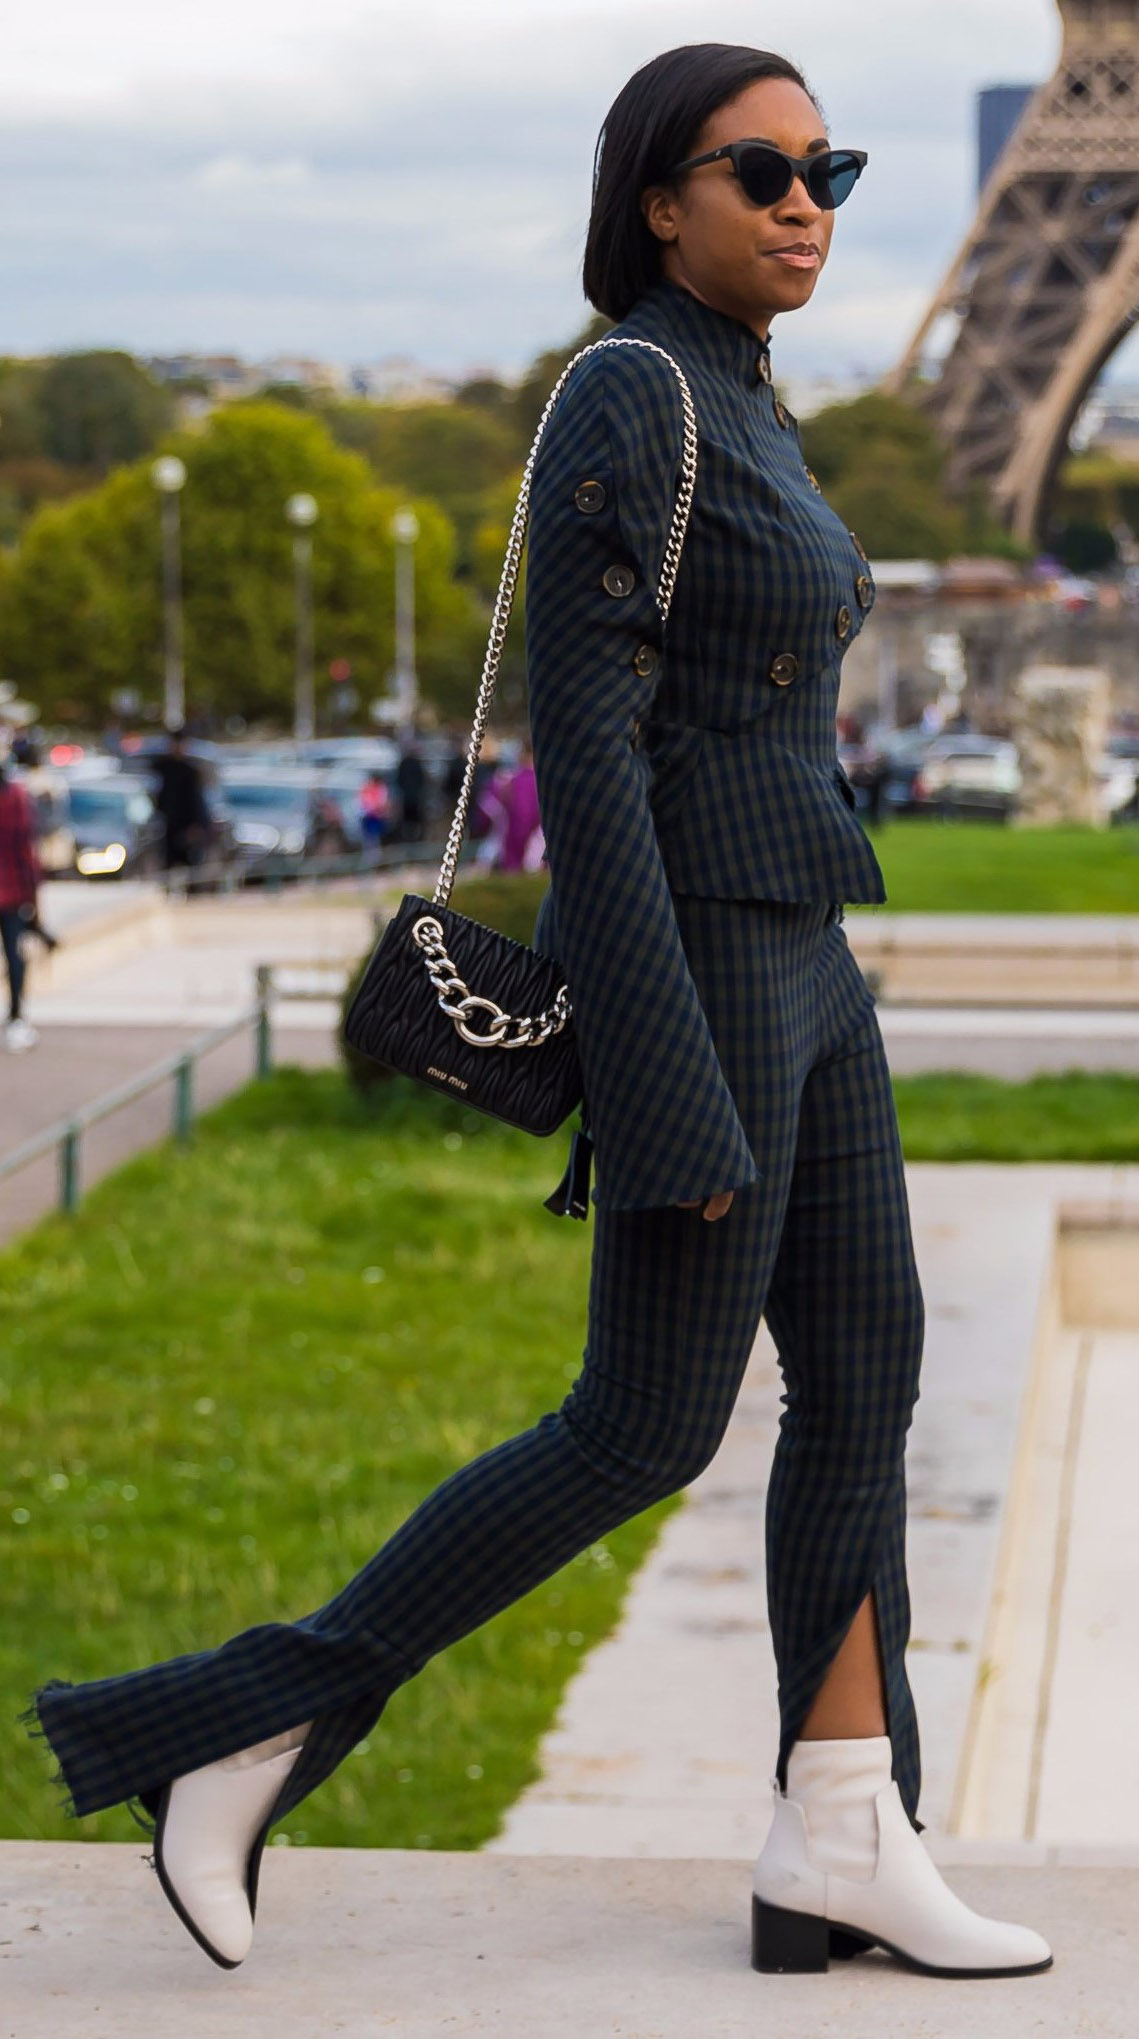 blue-navy-wideleg-pants-plaid-match-set-brun-sun-black-bag-white-shoe-booties-fall-winter-lunch.jpg